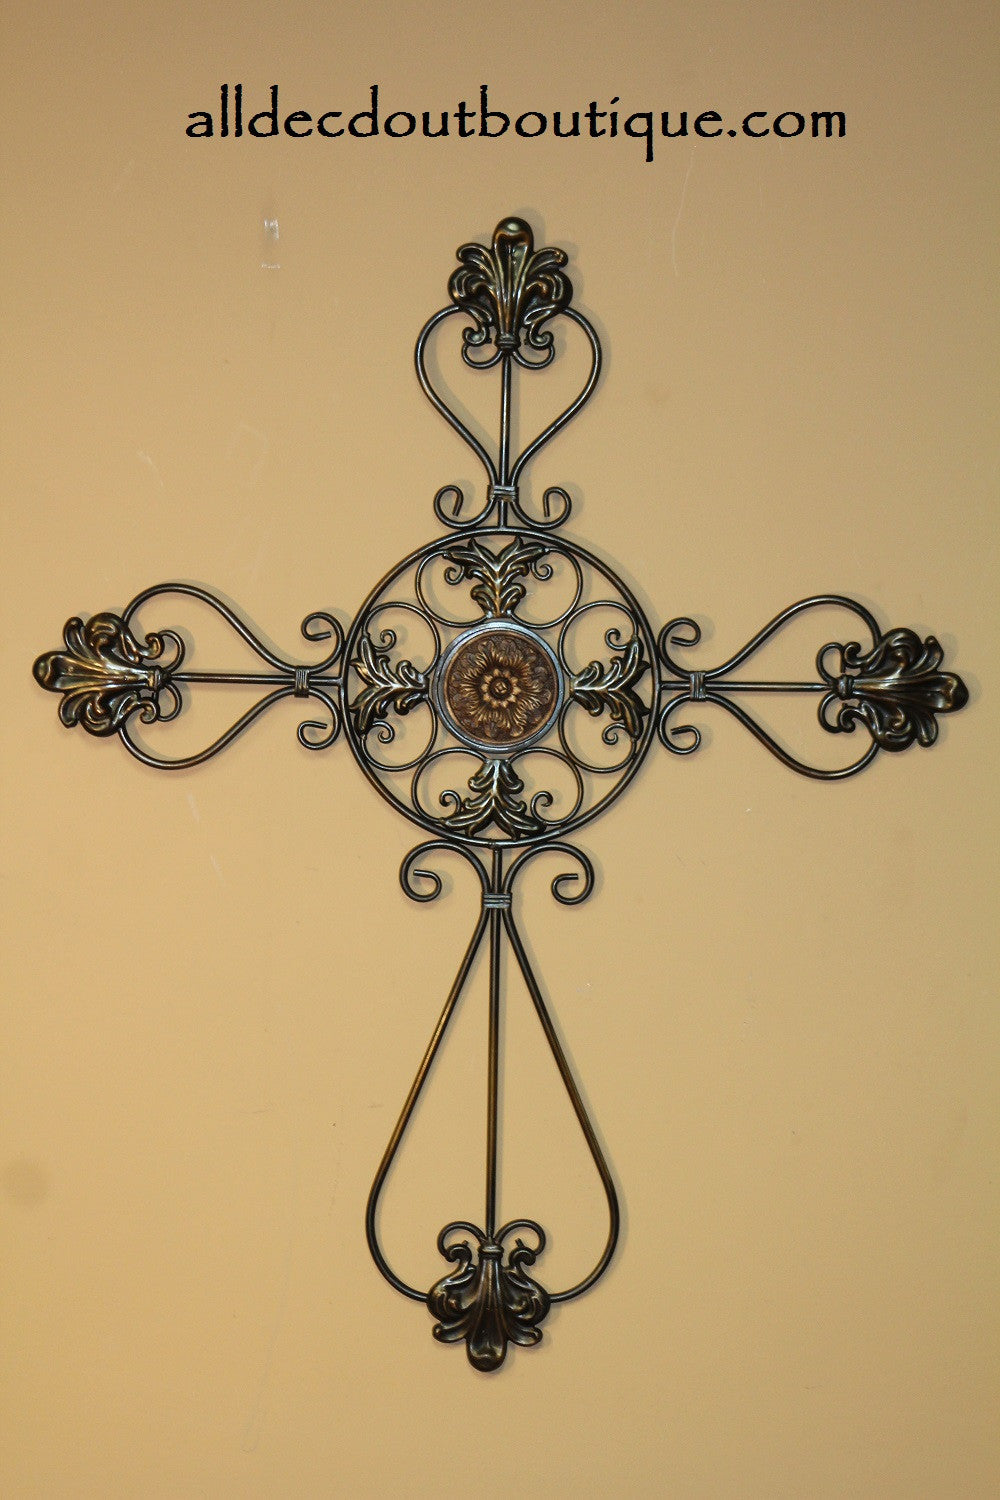 Wall Decor | Metal Hanging Cross - All Decd Out